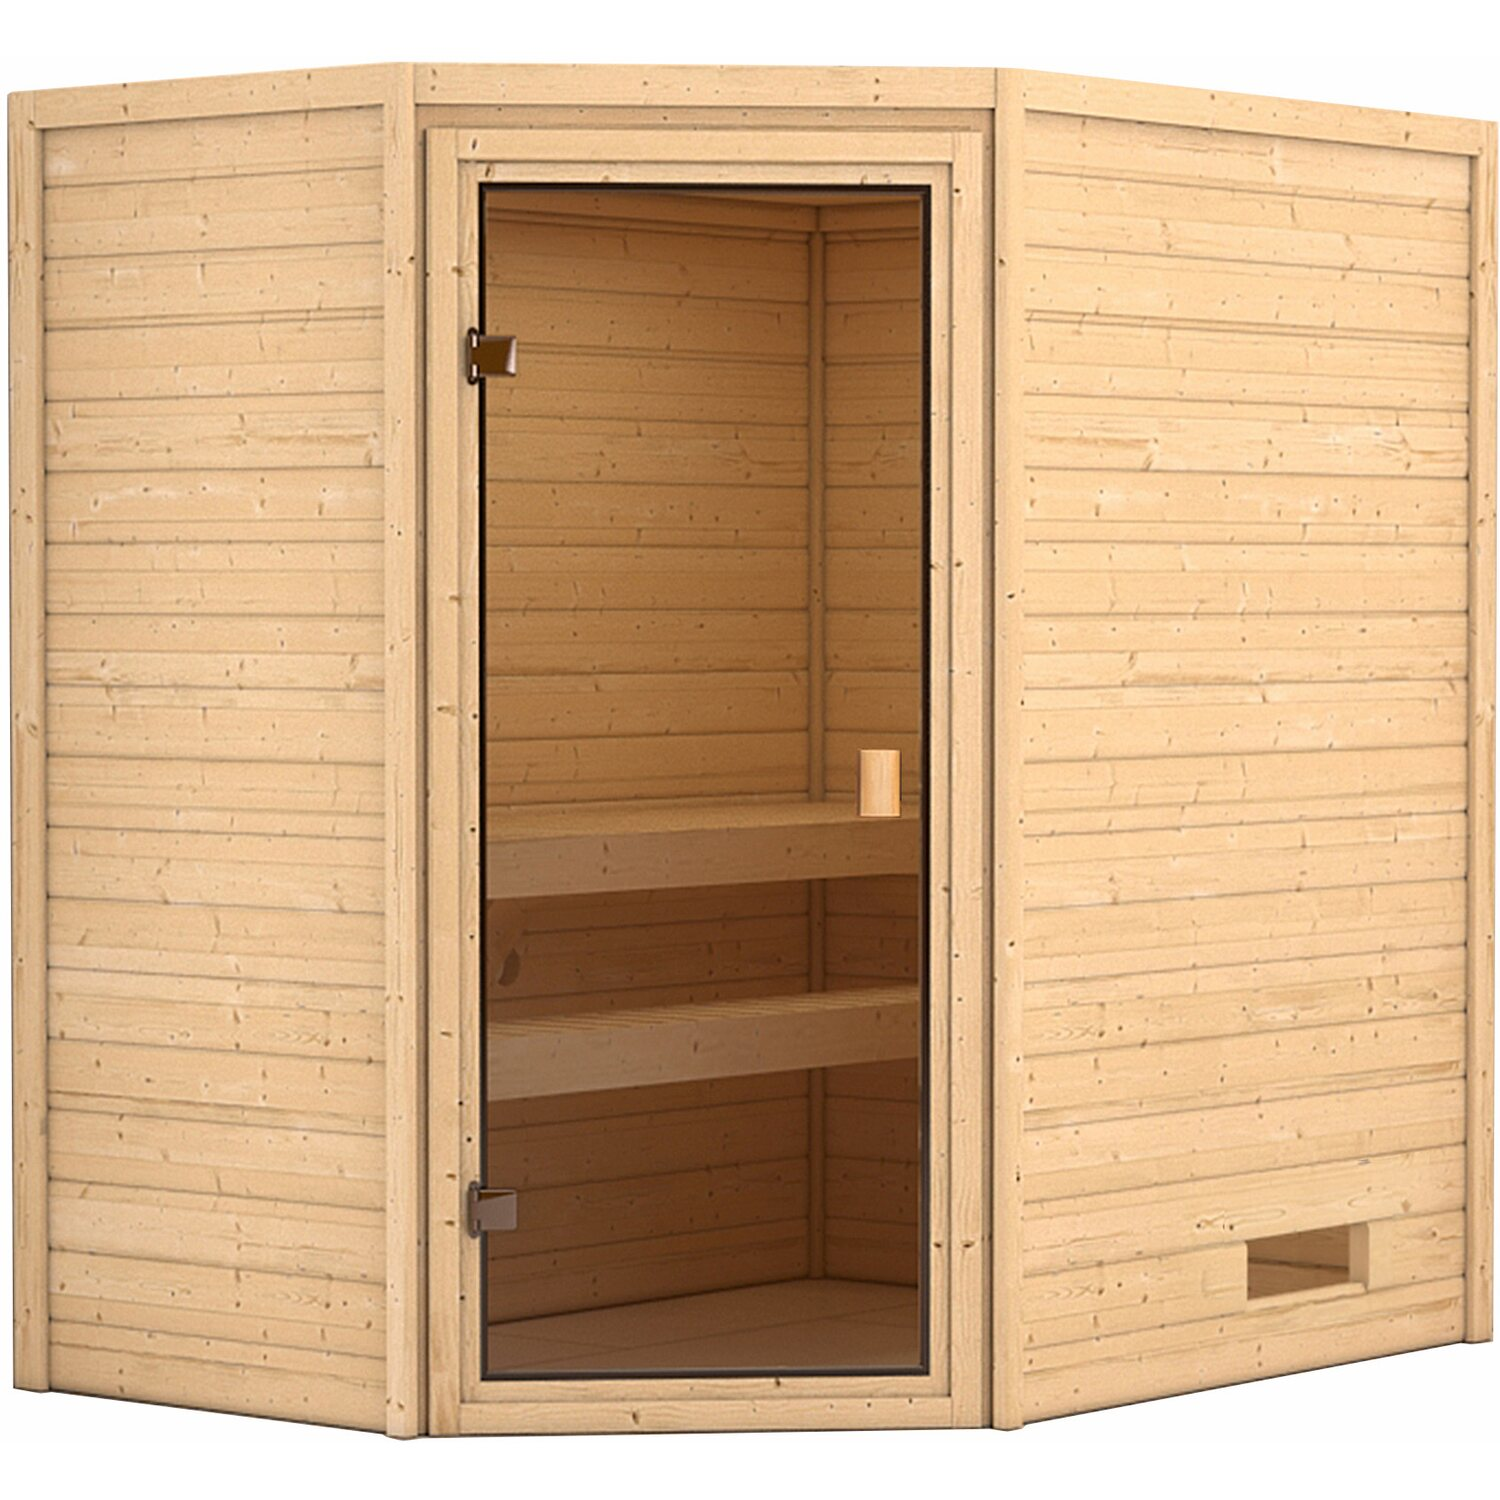 woodfeeling sauna ayla ofen mit eing strg bluetooth lautsprecher zubeh r kaufen bei obi. Black Bedroom Furniture Sets. Home Design Ideas